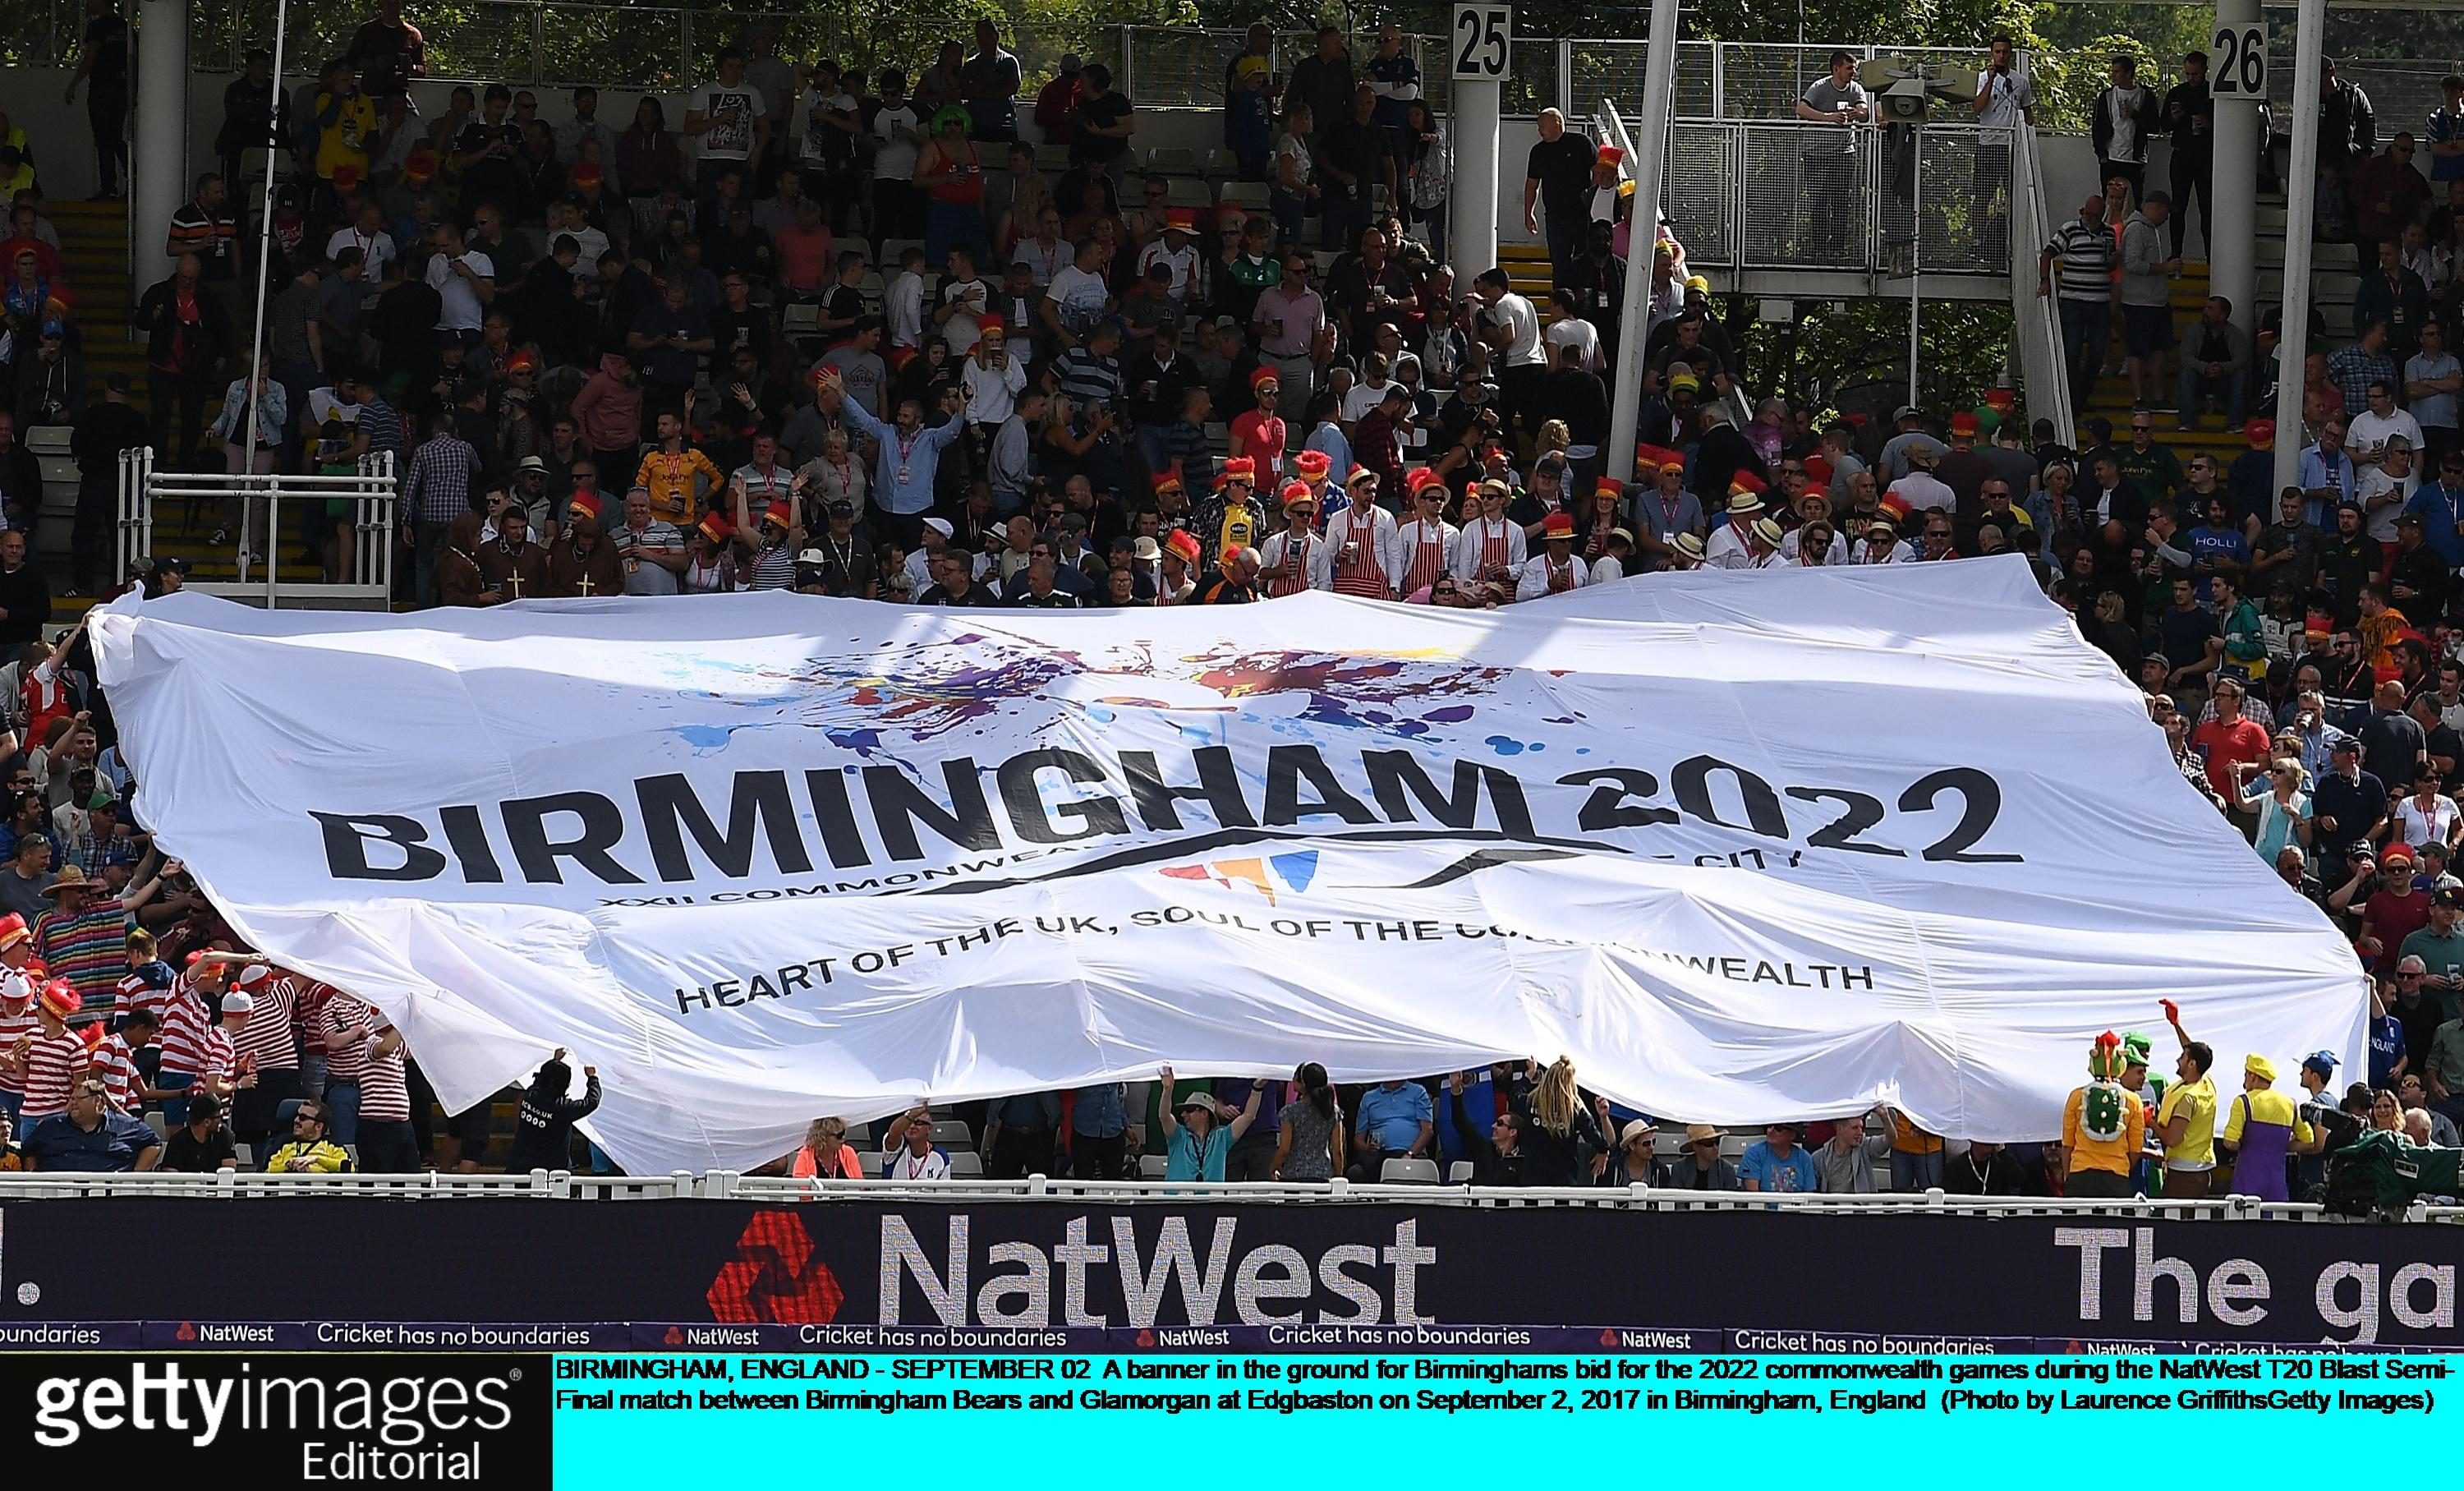 Birmingham will host the 2022 Commonwealth Games